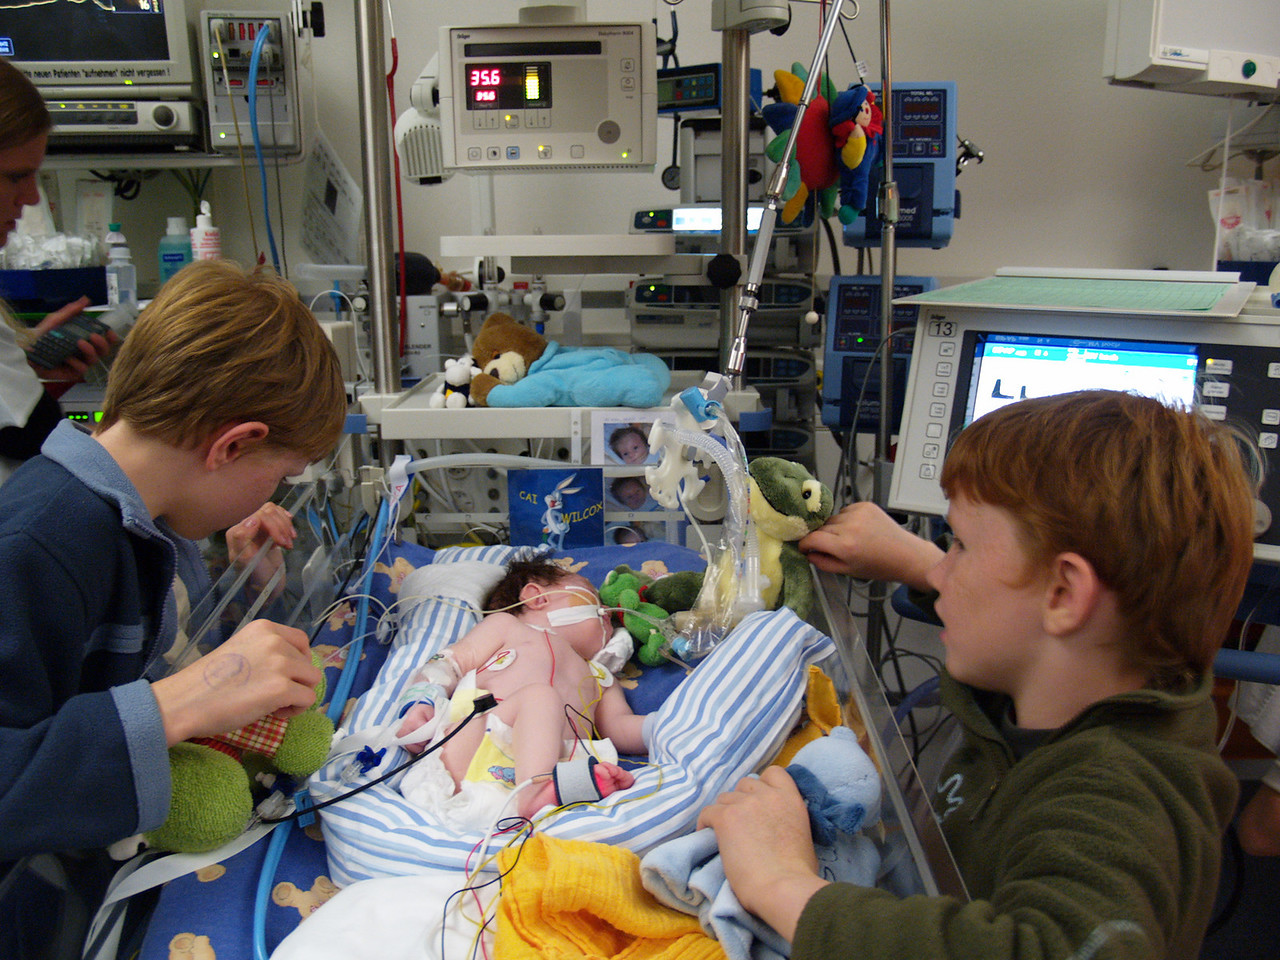 """Friday 11th Nov 05 - Jason and Oiver """"play"""" with Cai.<br /> <br /> Cai is now in the other intensive care unit (A) the other one (B) specialised in heart problems. Cai is stable at the moment, he is having some support from the ventilator machine but not a lot.<br /> <br /> The nurse looking after him arrranged for us to visit a little girl about 3 years old who had a tracheotomy  so that we can see what to expect. The little girl seemed happy active and contented as she drew pictures, which made us feel better and gave us more hope for the future.<br /> <br /> later on we were shown the portable home suction unit - I had better get in training if we are to go walking in the mountains with him, but at least hopefully we won't be housebound.<br /> <br /> This Picture should be reassuring to young boys everywhere, that clean disinfected hands doesn't mean you disintegrate.<br /> <br /> Today of course is the 11th day of the 11th month - so we spent some time remembering. I should have been more organised and ordered a poppy for today's photo."""